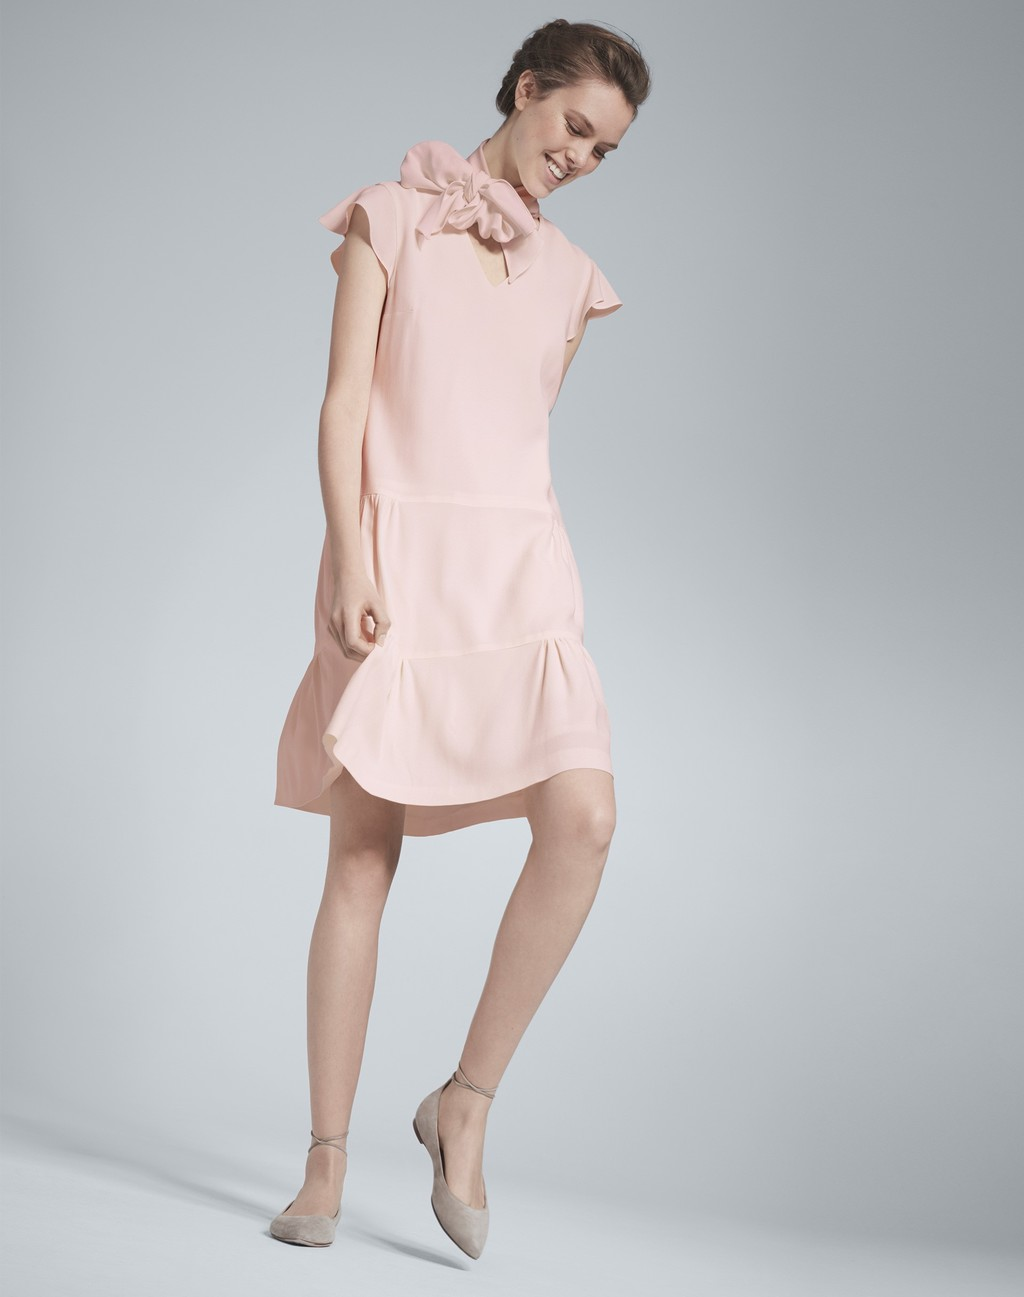 Garden Party Dress Blush - style: shift; sleeve style: capped; pattern: plain; neckline: high neck; predominant colour: blush; occasions: evening, creative work; length: just above the knee; fit: soft a-line; fibres: polyester/polyamide - 100%; sleeve length: short sleeve; texture group: crepes; pattern type: fabric; embellishment: corsage; season: s/s 2016; wardrobe: highlight; embellishment location: shoulder